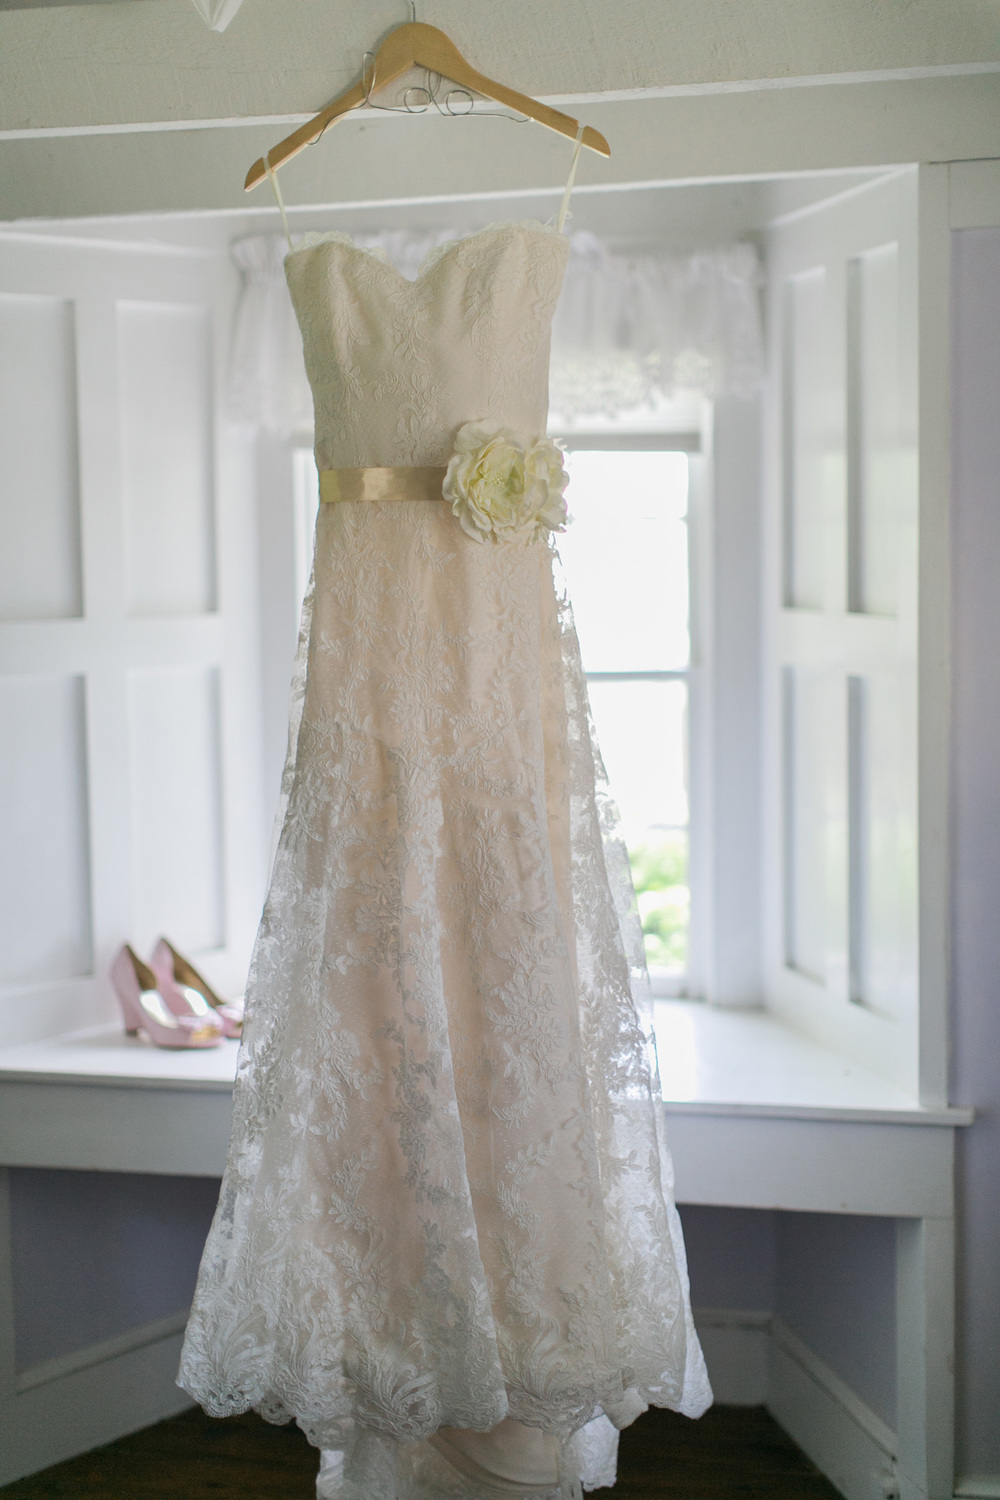 003-vintage-wedding-dress.jpg